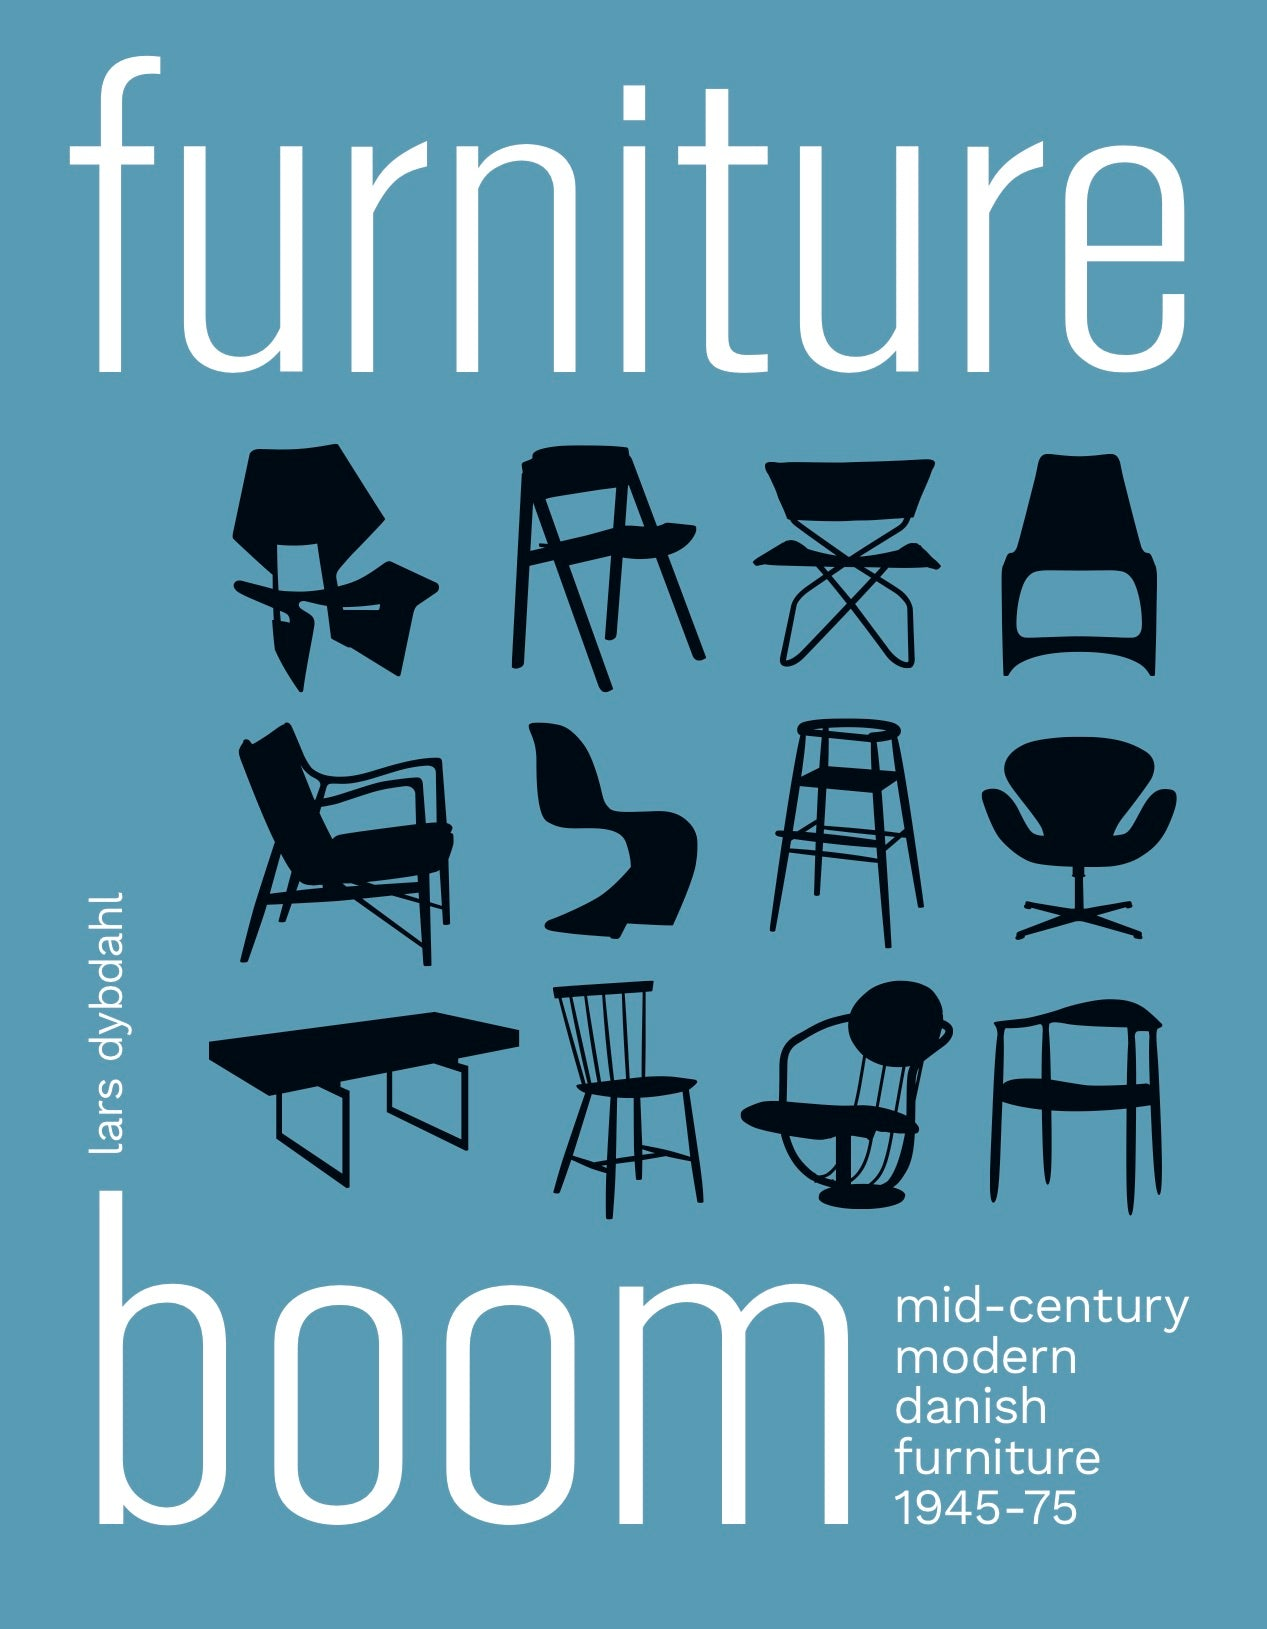 The Danish Furniture Boom 1945-1975